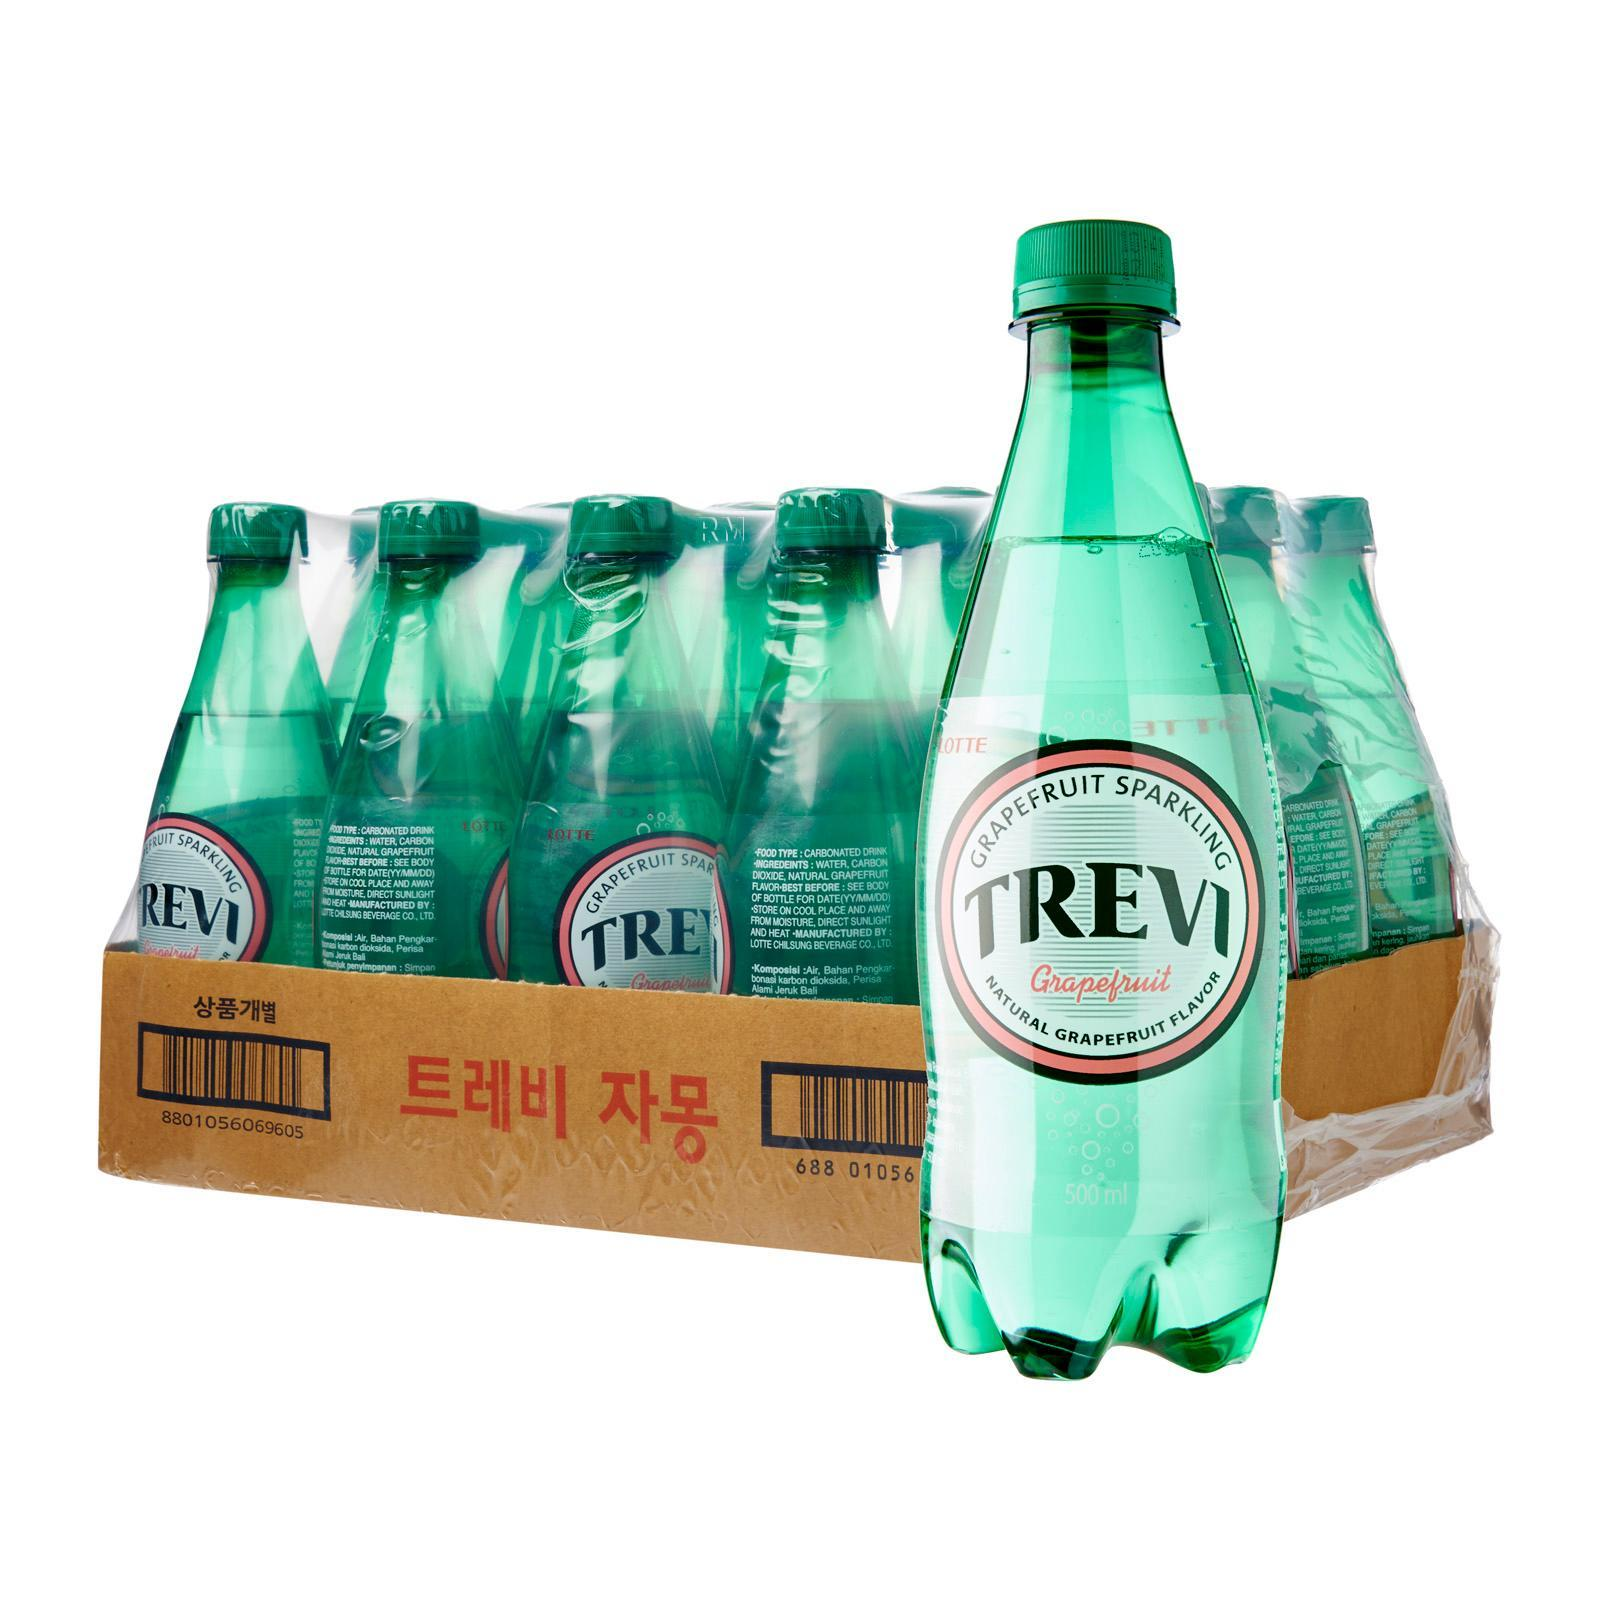 Lotte Chilsung Trevi Sparkling Water Grapefruit - Case